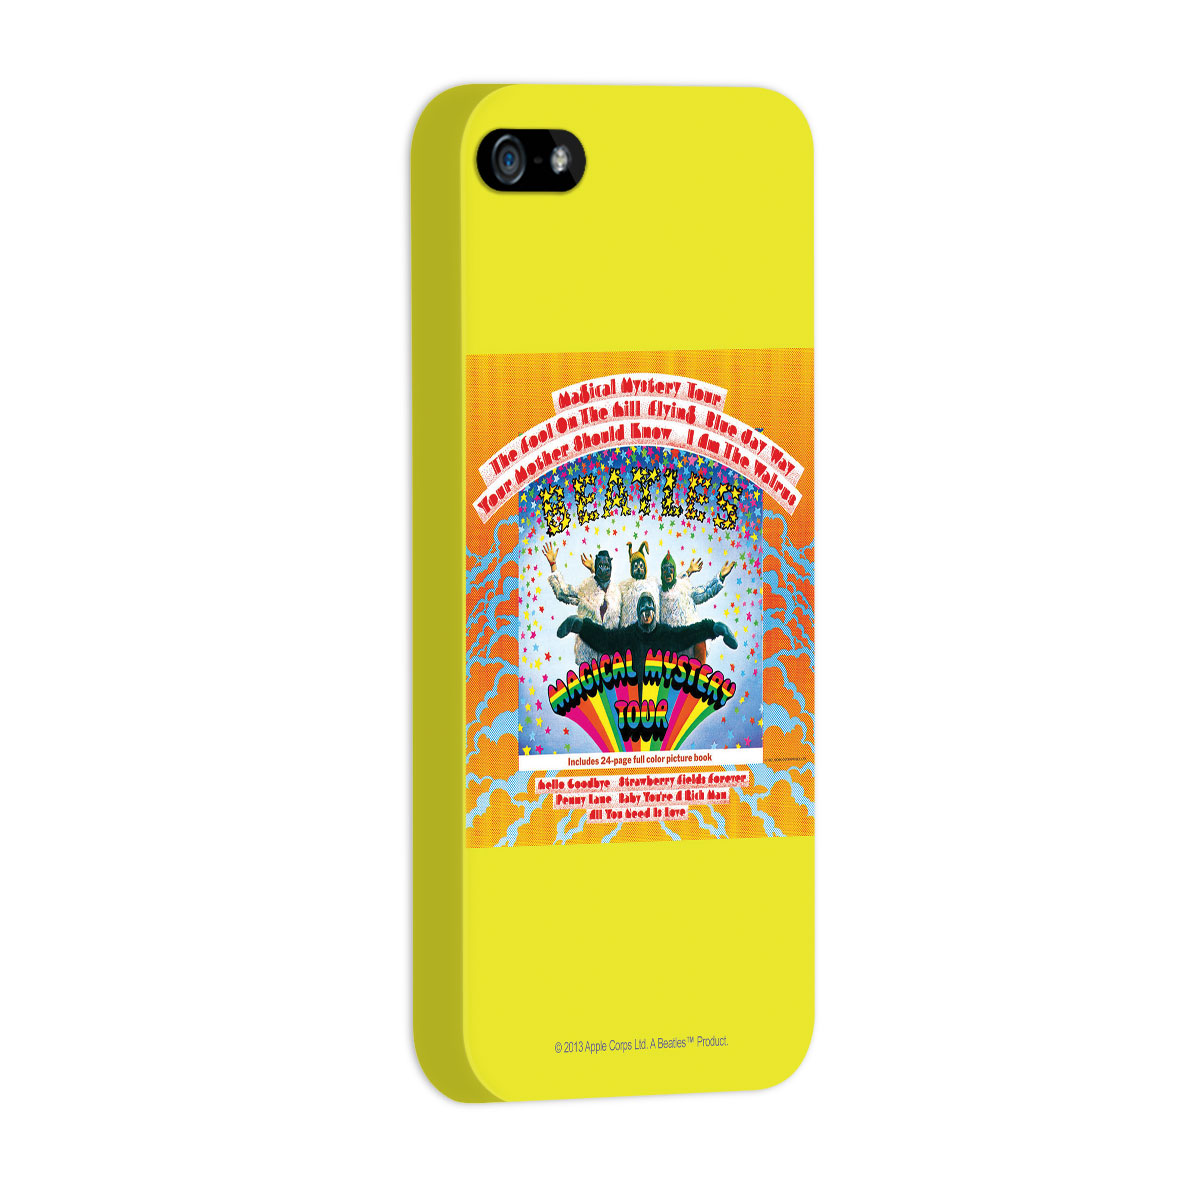 Capa de iPhone 5/5S The Beatles Magical Mistery Tour